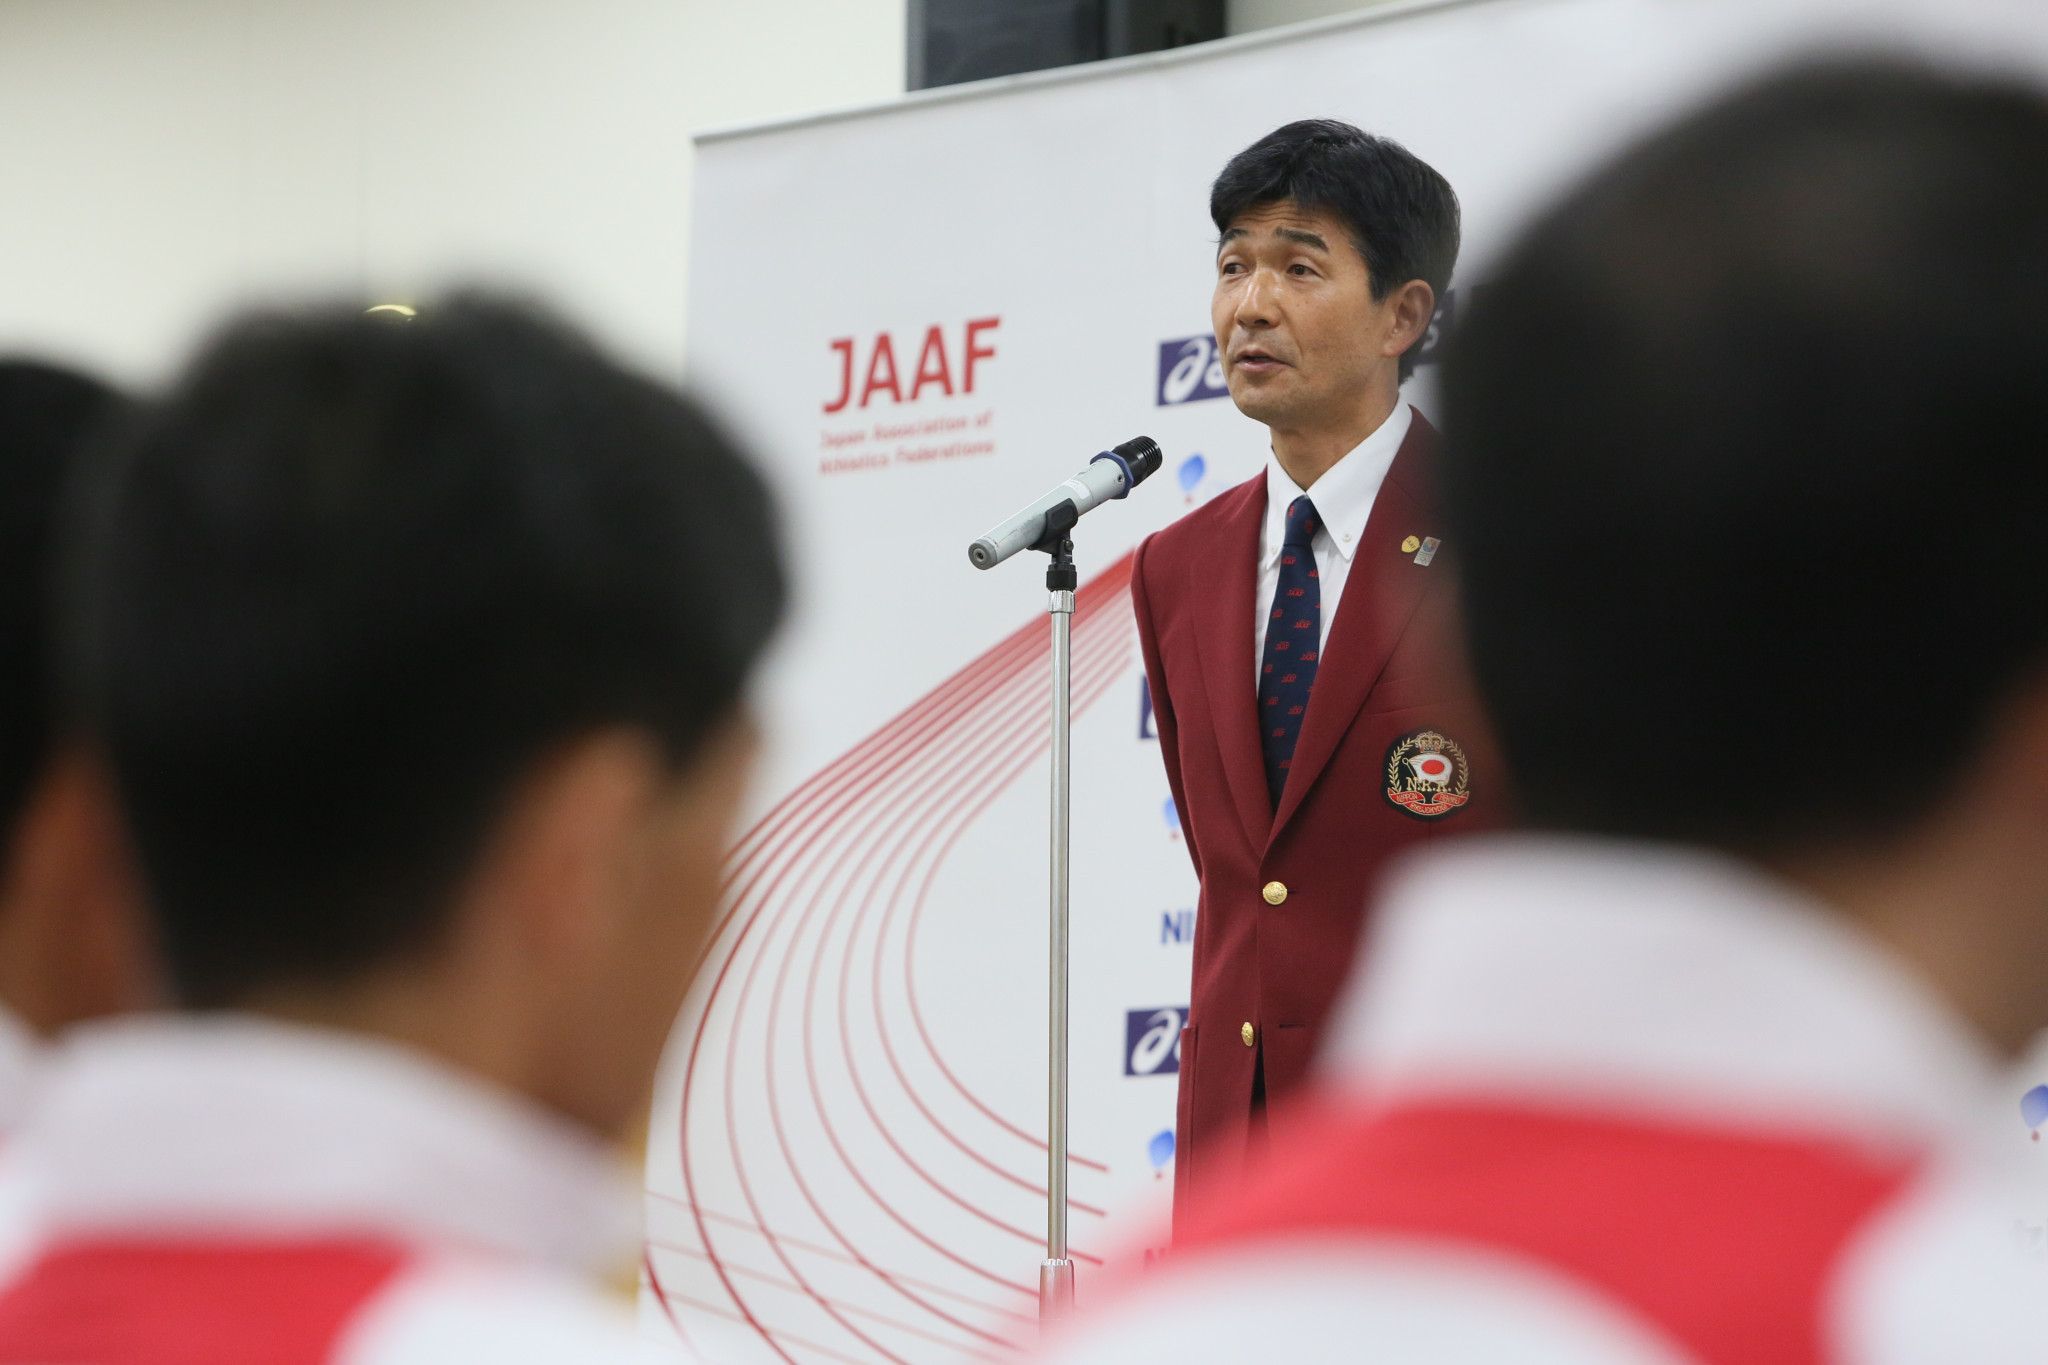 Mitsugi Ogata, senior managing director of the Japan Association of Athletics Federations, has been named as Japan's Deputy Chef de Mission for the Tokyo 2020 Olympics ©Getty Images